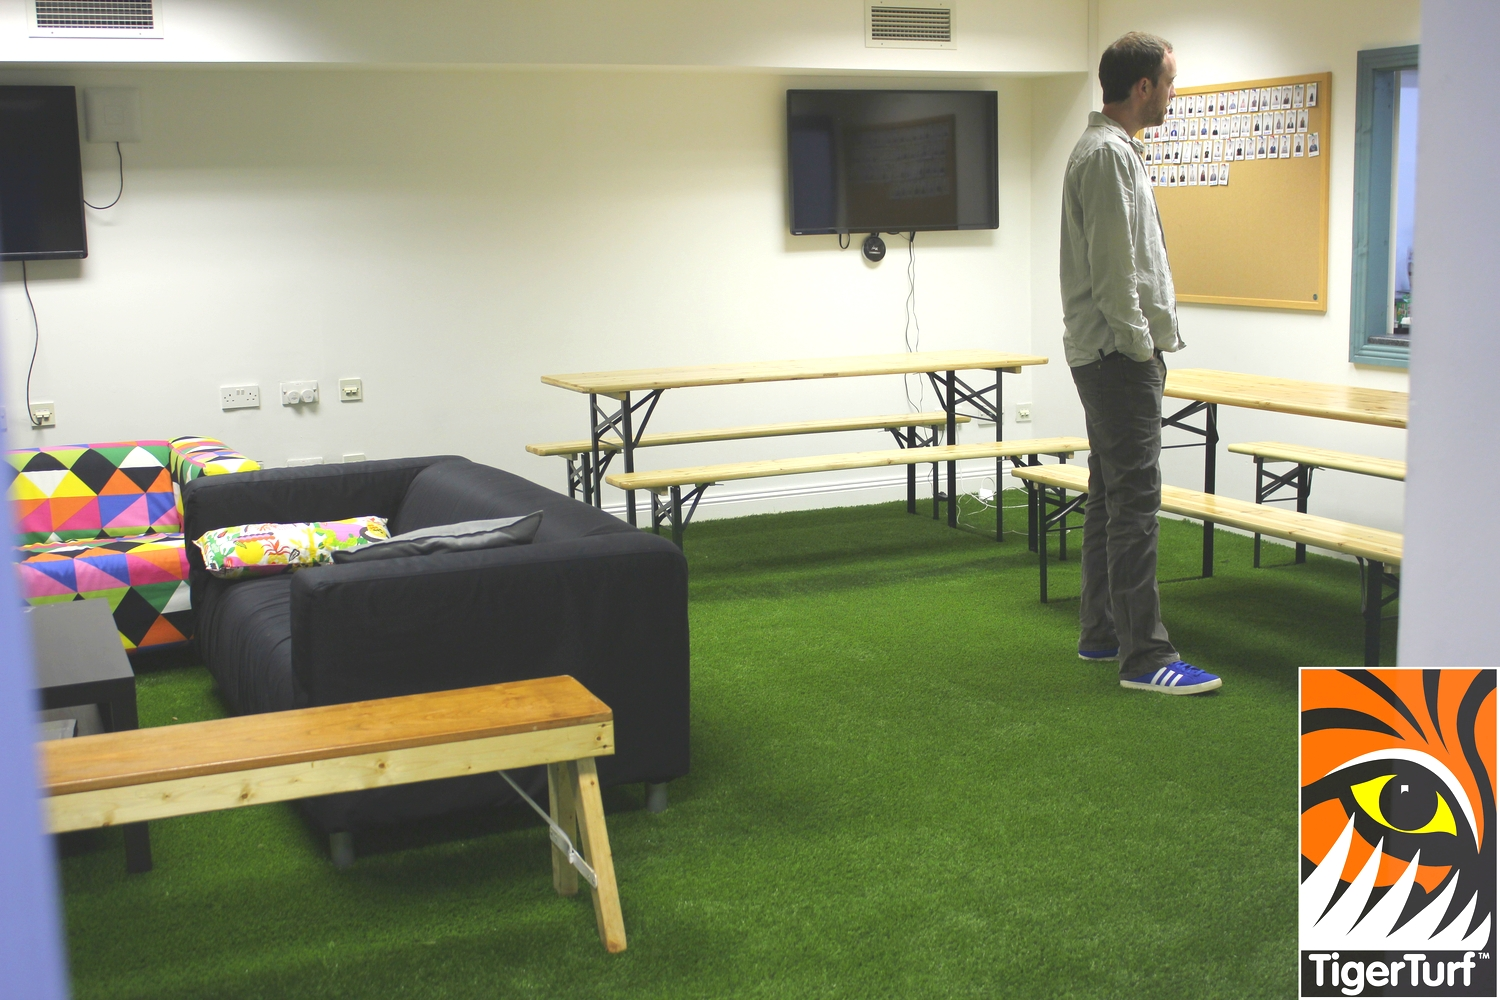 TigerTurf installed in Office communal area